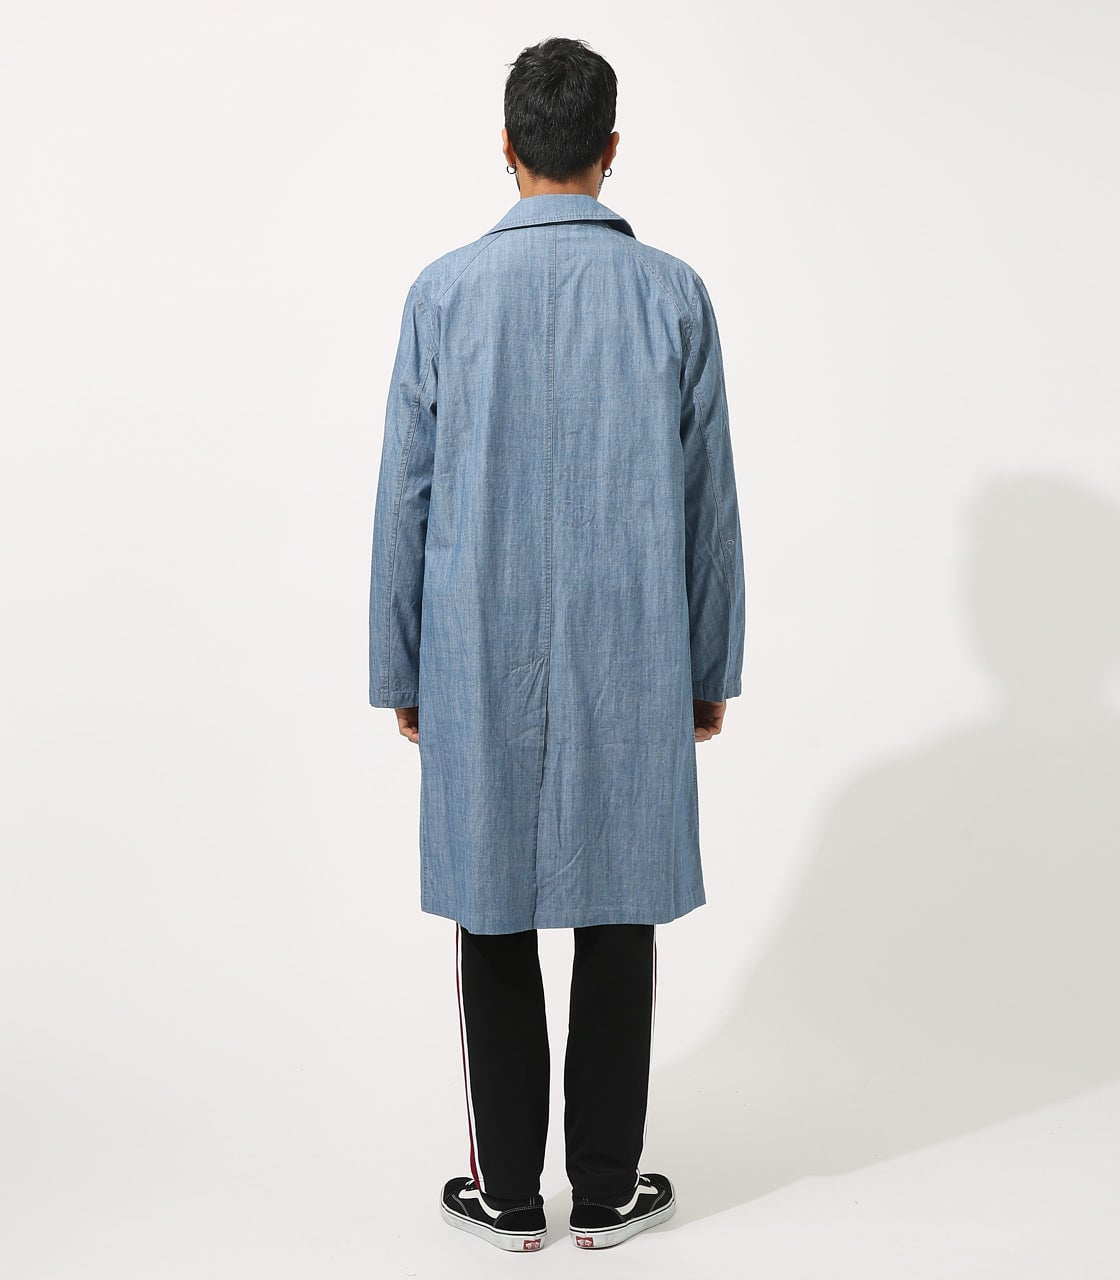 【AZUL BY MOUSSY】SOUTIEN COLLAR LONG COAT 詳細画像 BLU 7